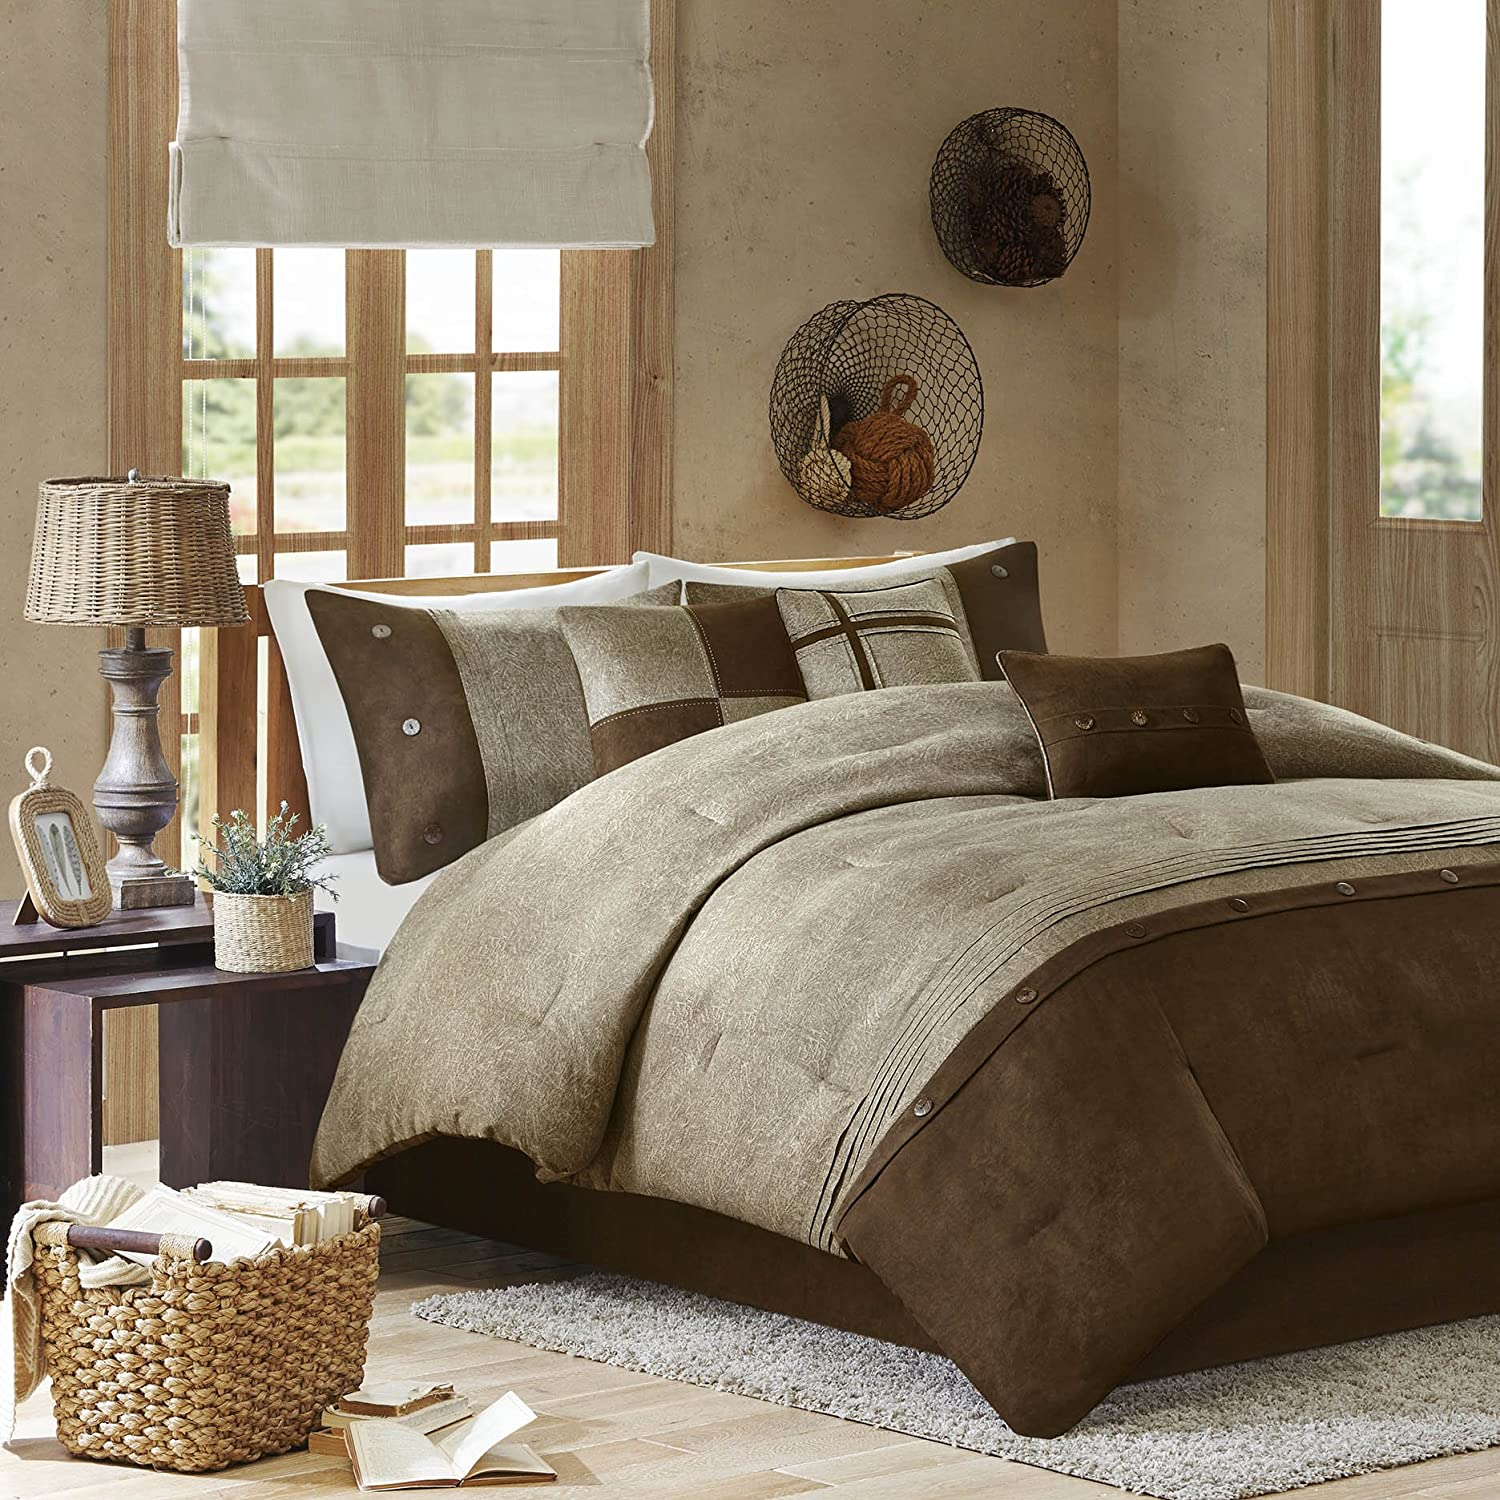 Brown Bedding Sets For Bedroom Ease Bedding With Style